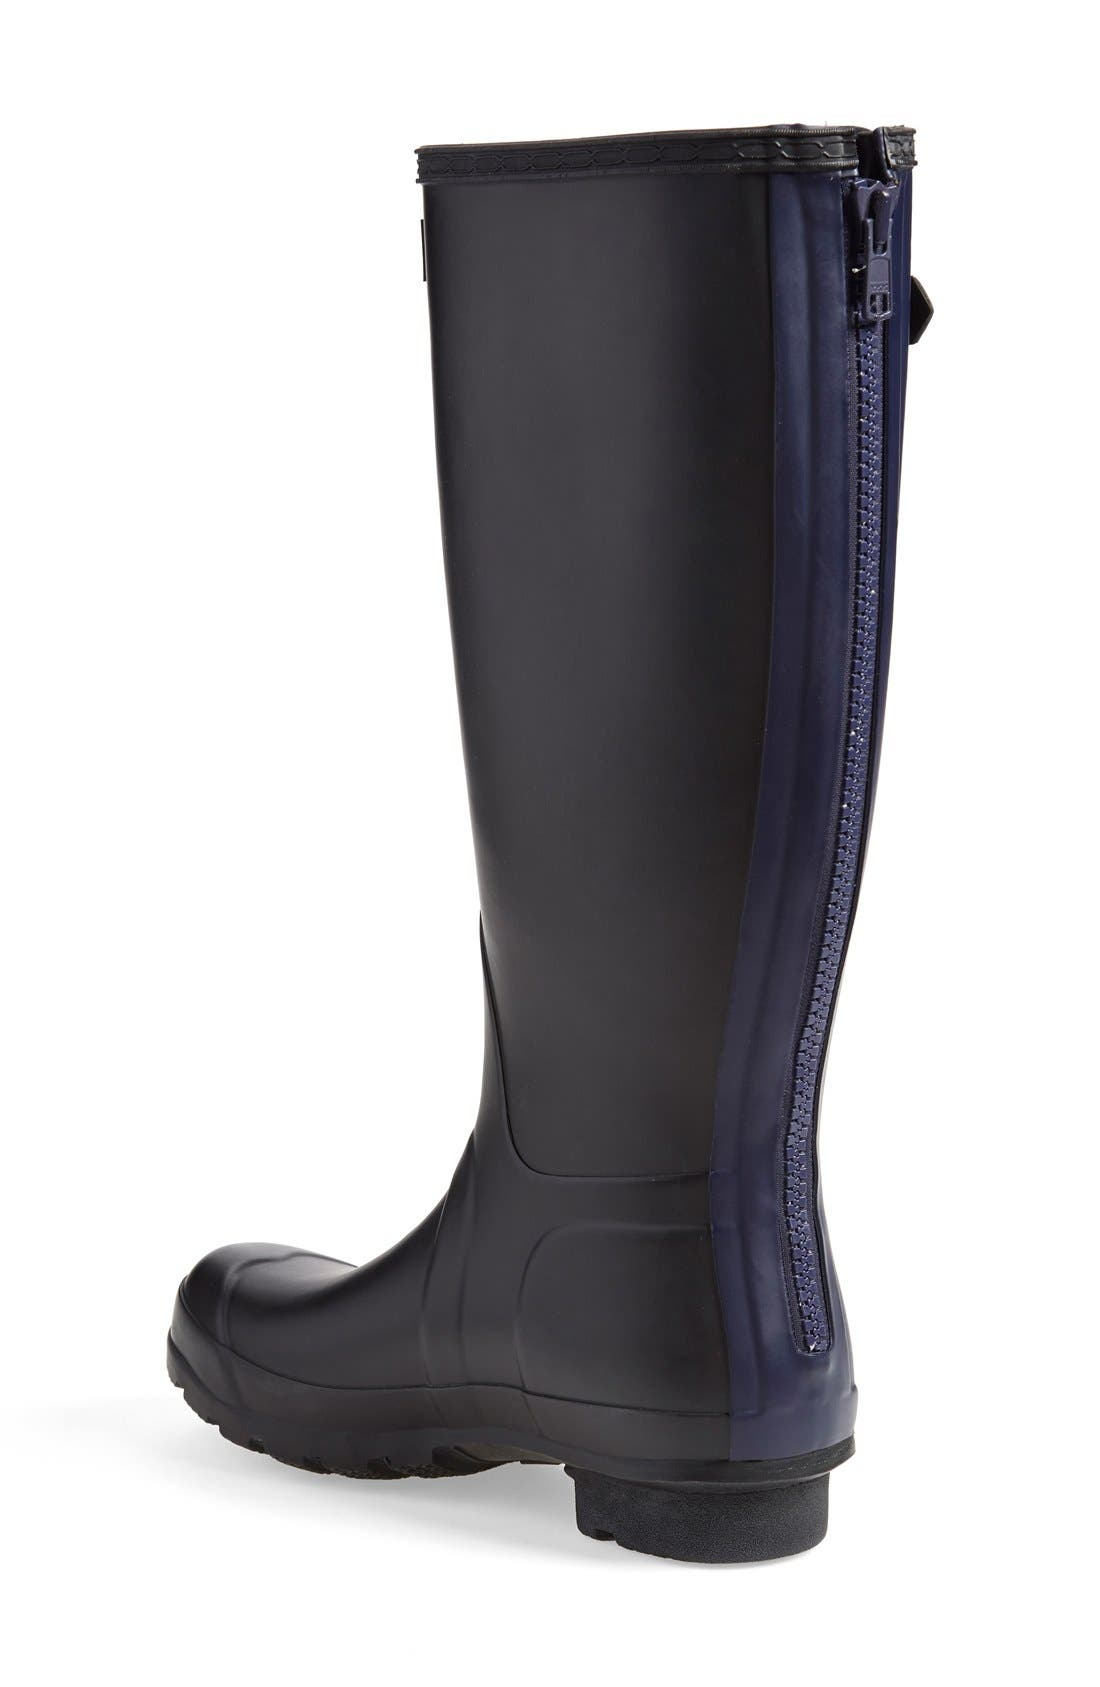 'Tall' Back Zip Rain Boot,                             Alternate thumbnail 2, color,                             Black/ Midnight